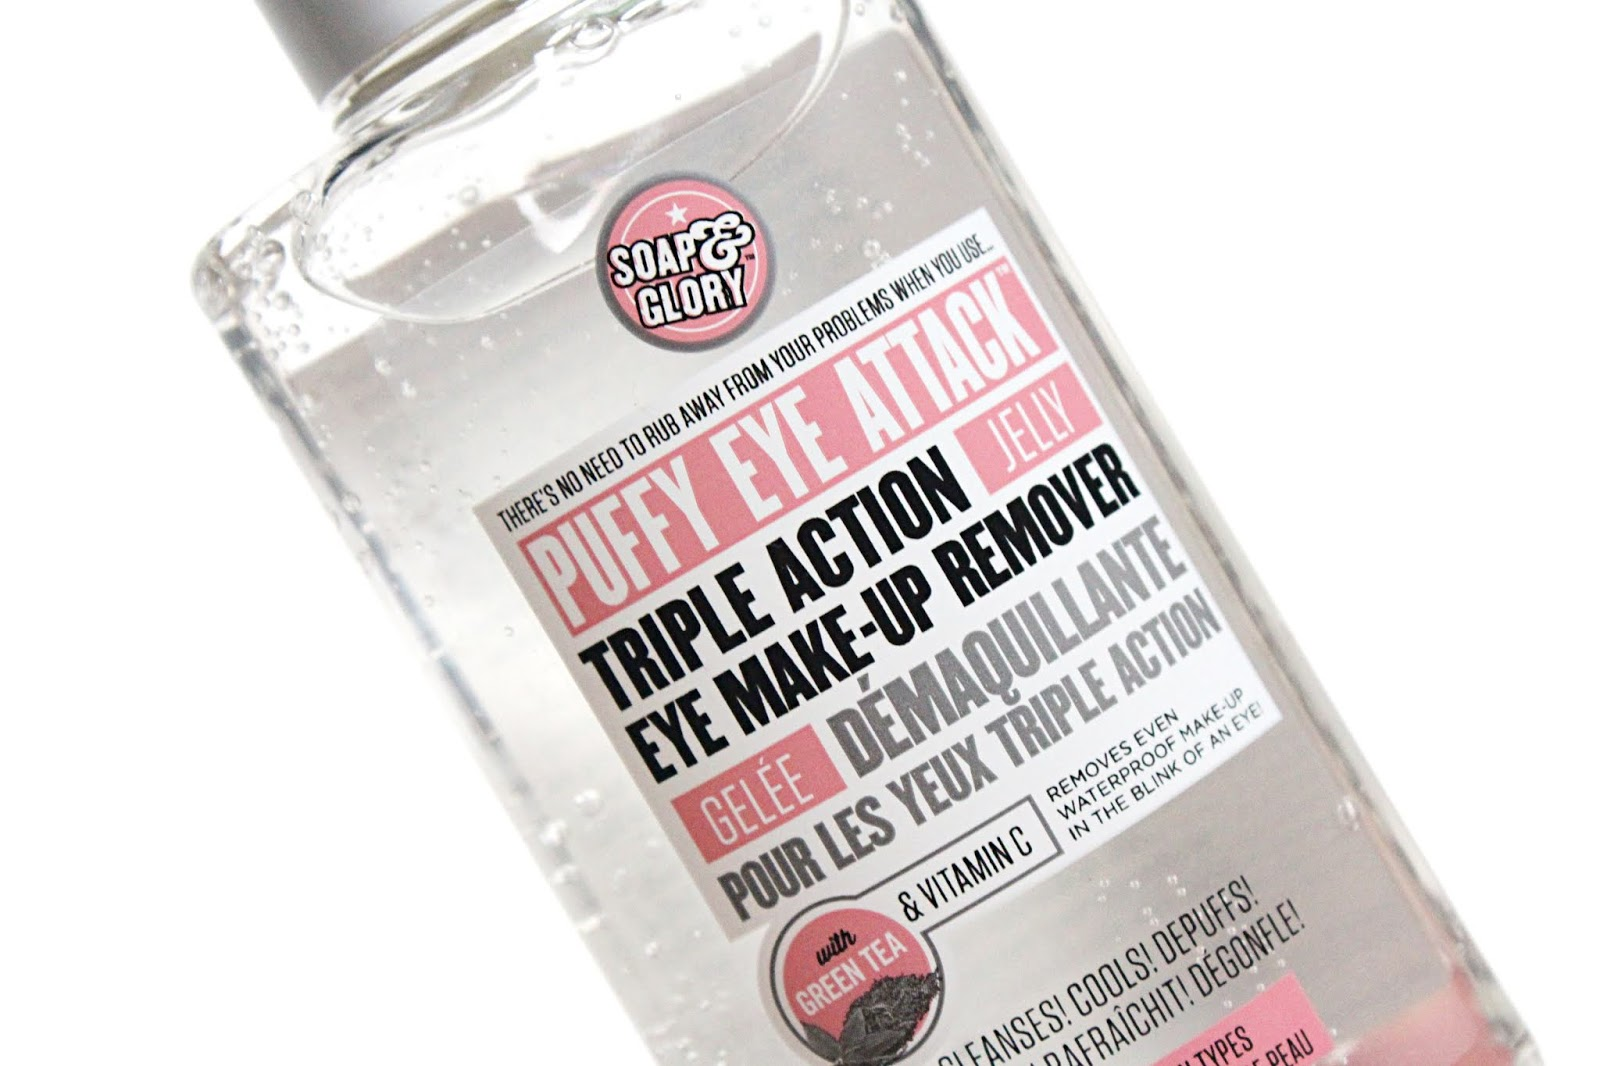 Soap & Glory Puffy Eye Attack Makeup Remover Review